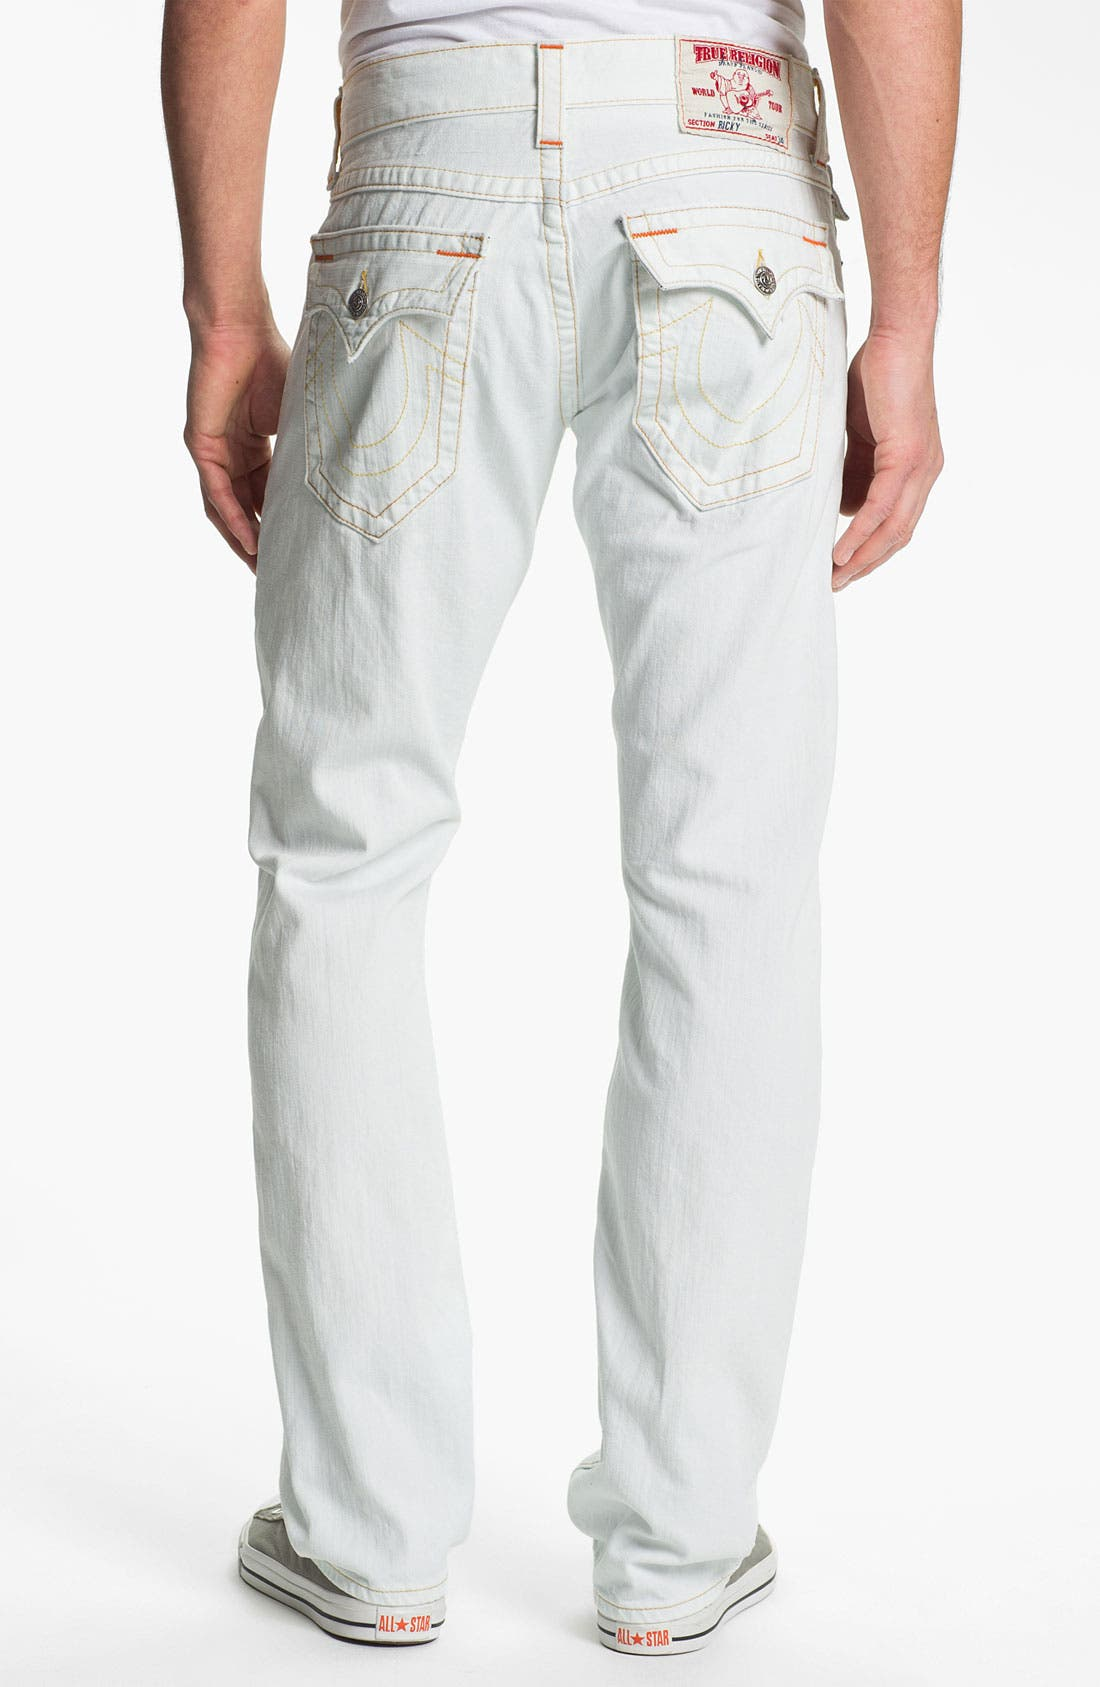 Alternate Image 1 Selected - True Religion Brand Jeans 'Ricky' Straight Leg Jeans (Bleached) (Online Exclusive)